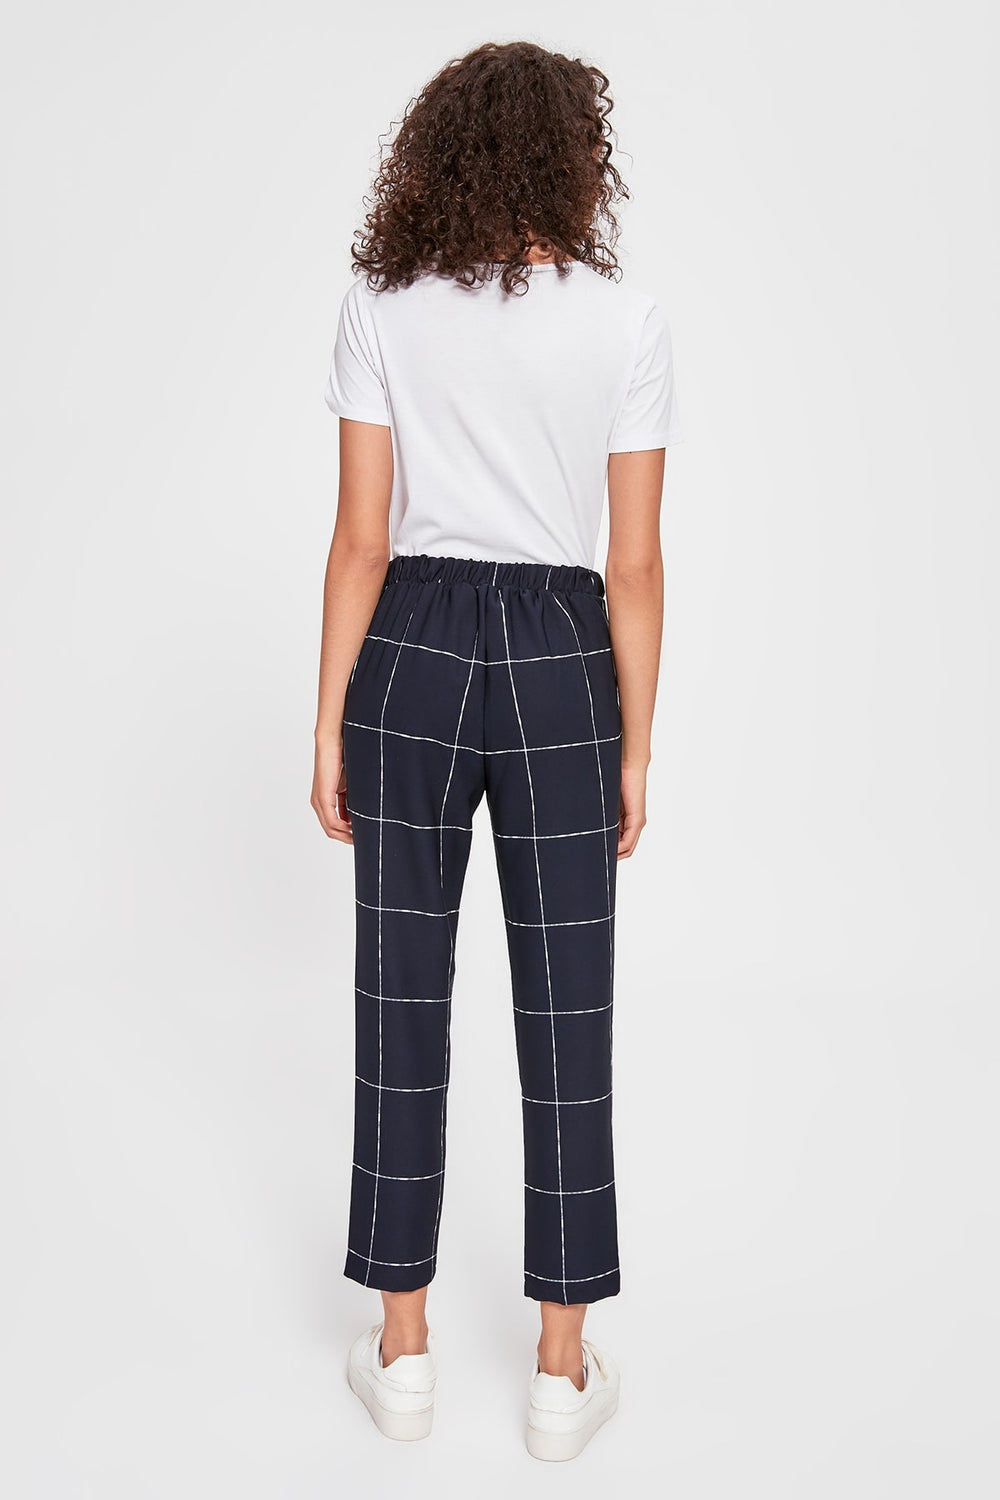 Miss Zut Miss Zut Dark Blue Lacing Detailed Plaid Pants Miss Zut &CO